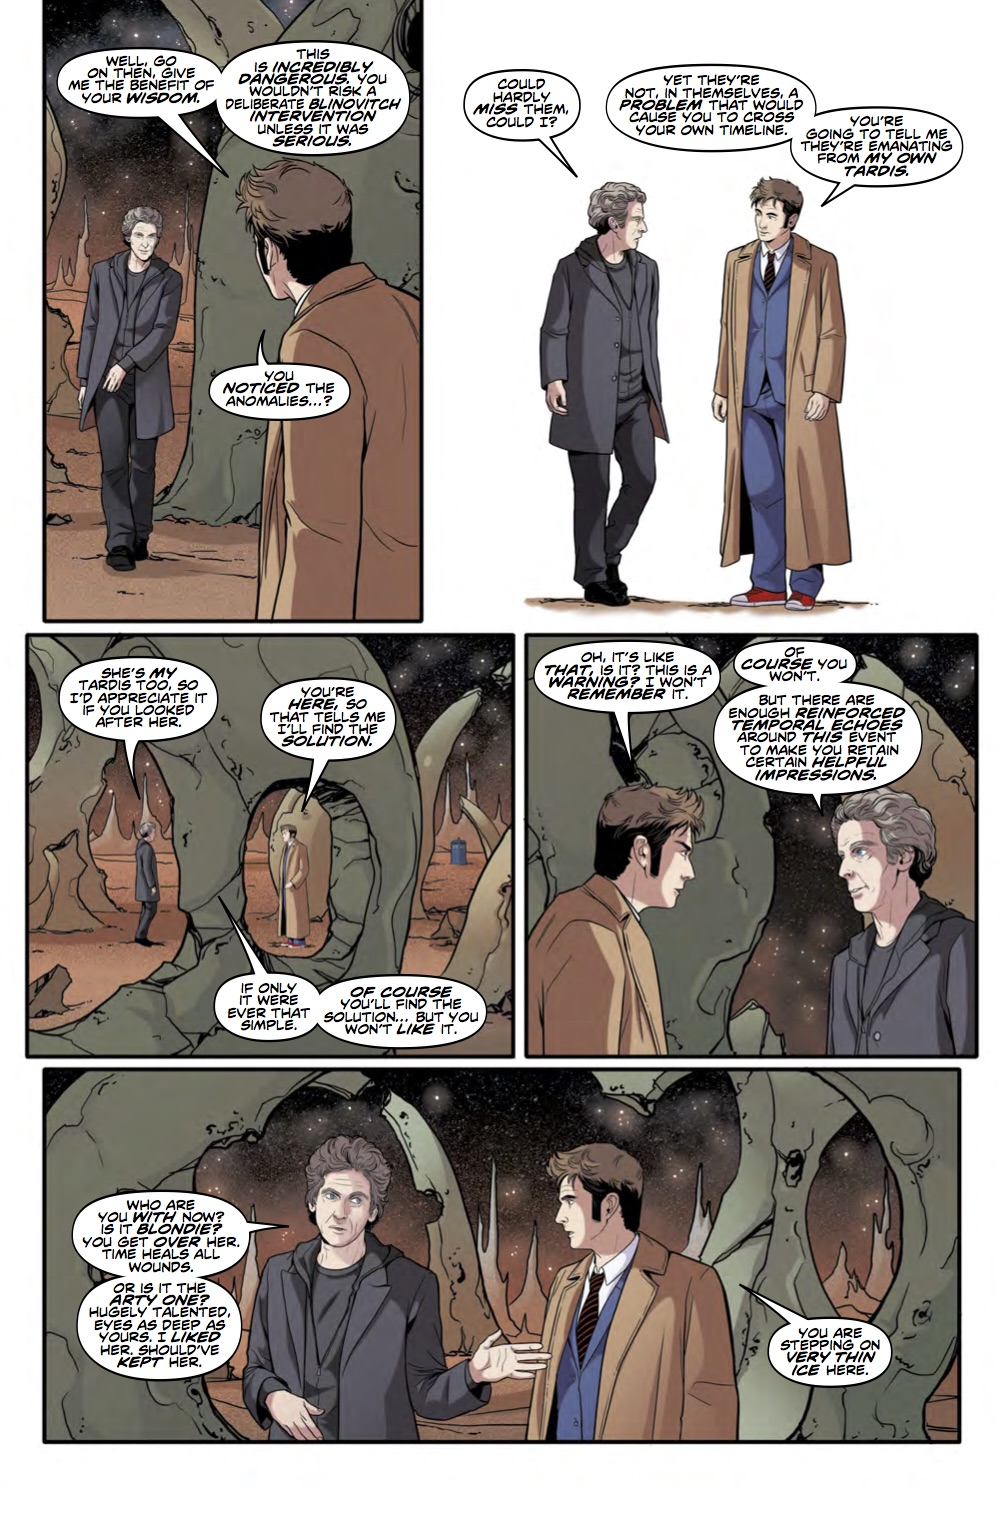 The Tenth Doctor: Facing Fate Volume 2: Vortex Butterflies - Page 7 (Credit: Titan )